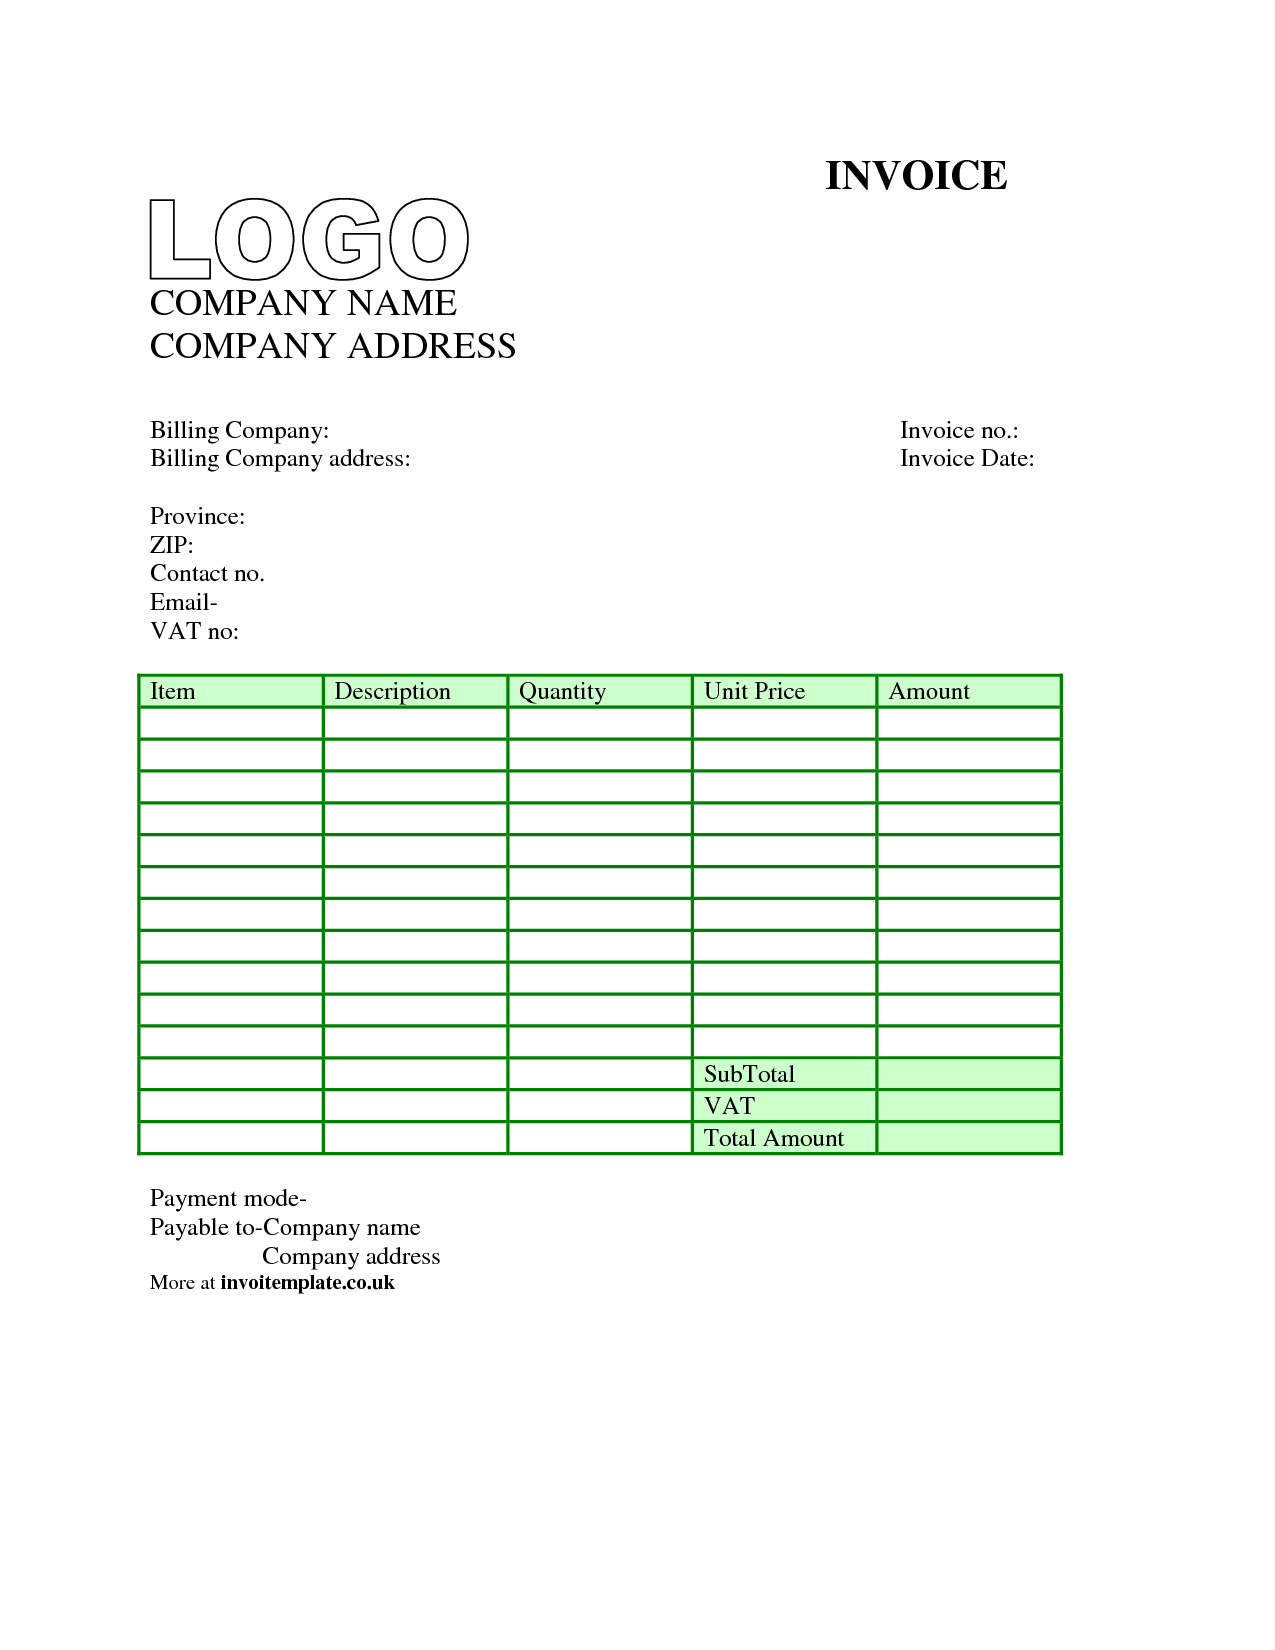 contractor invoice template uk – notators, Invoice examples